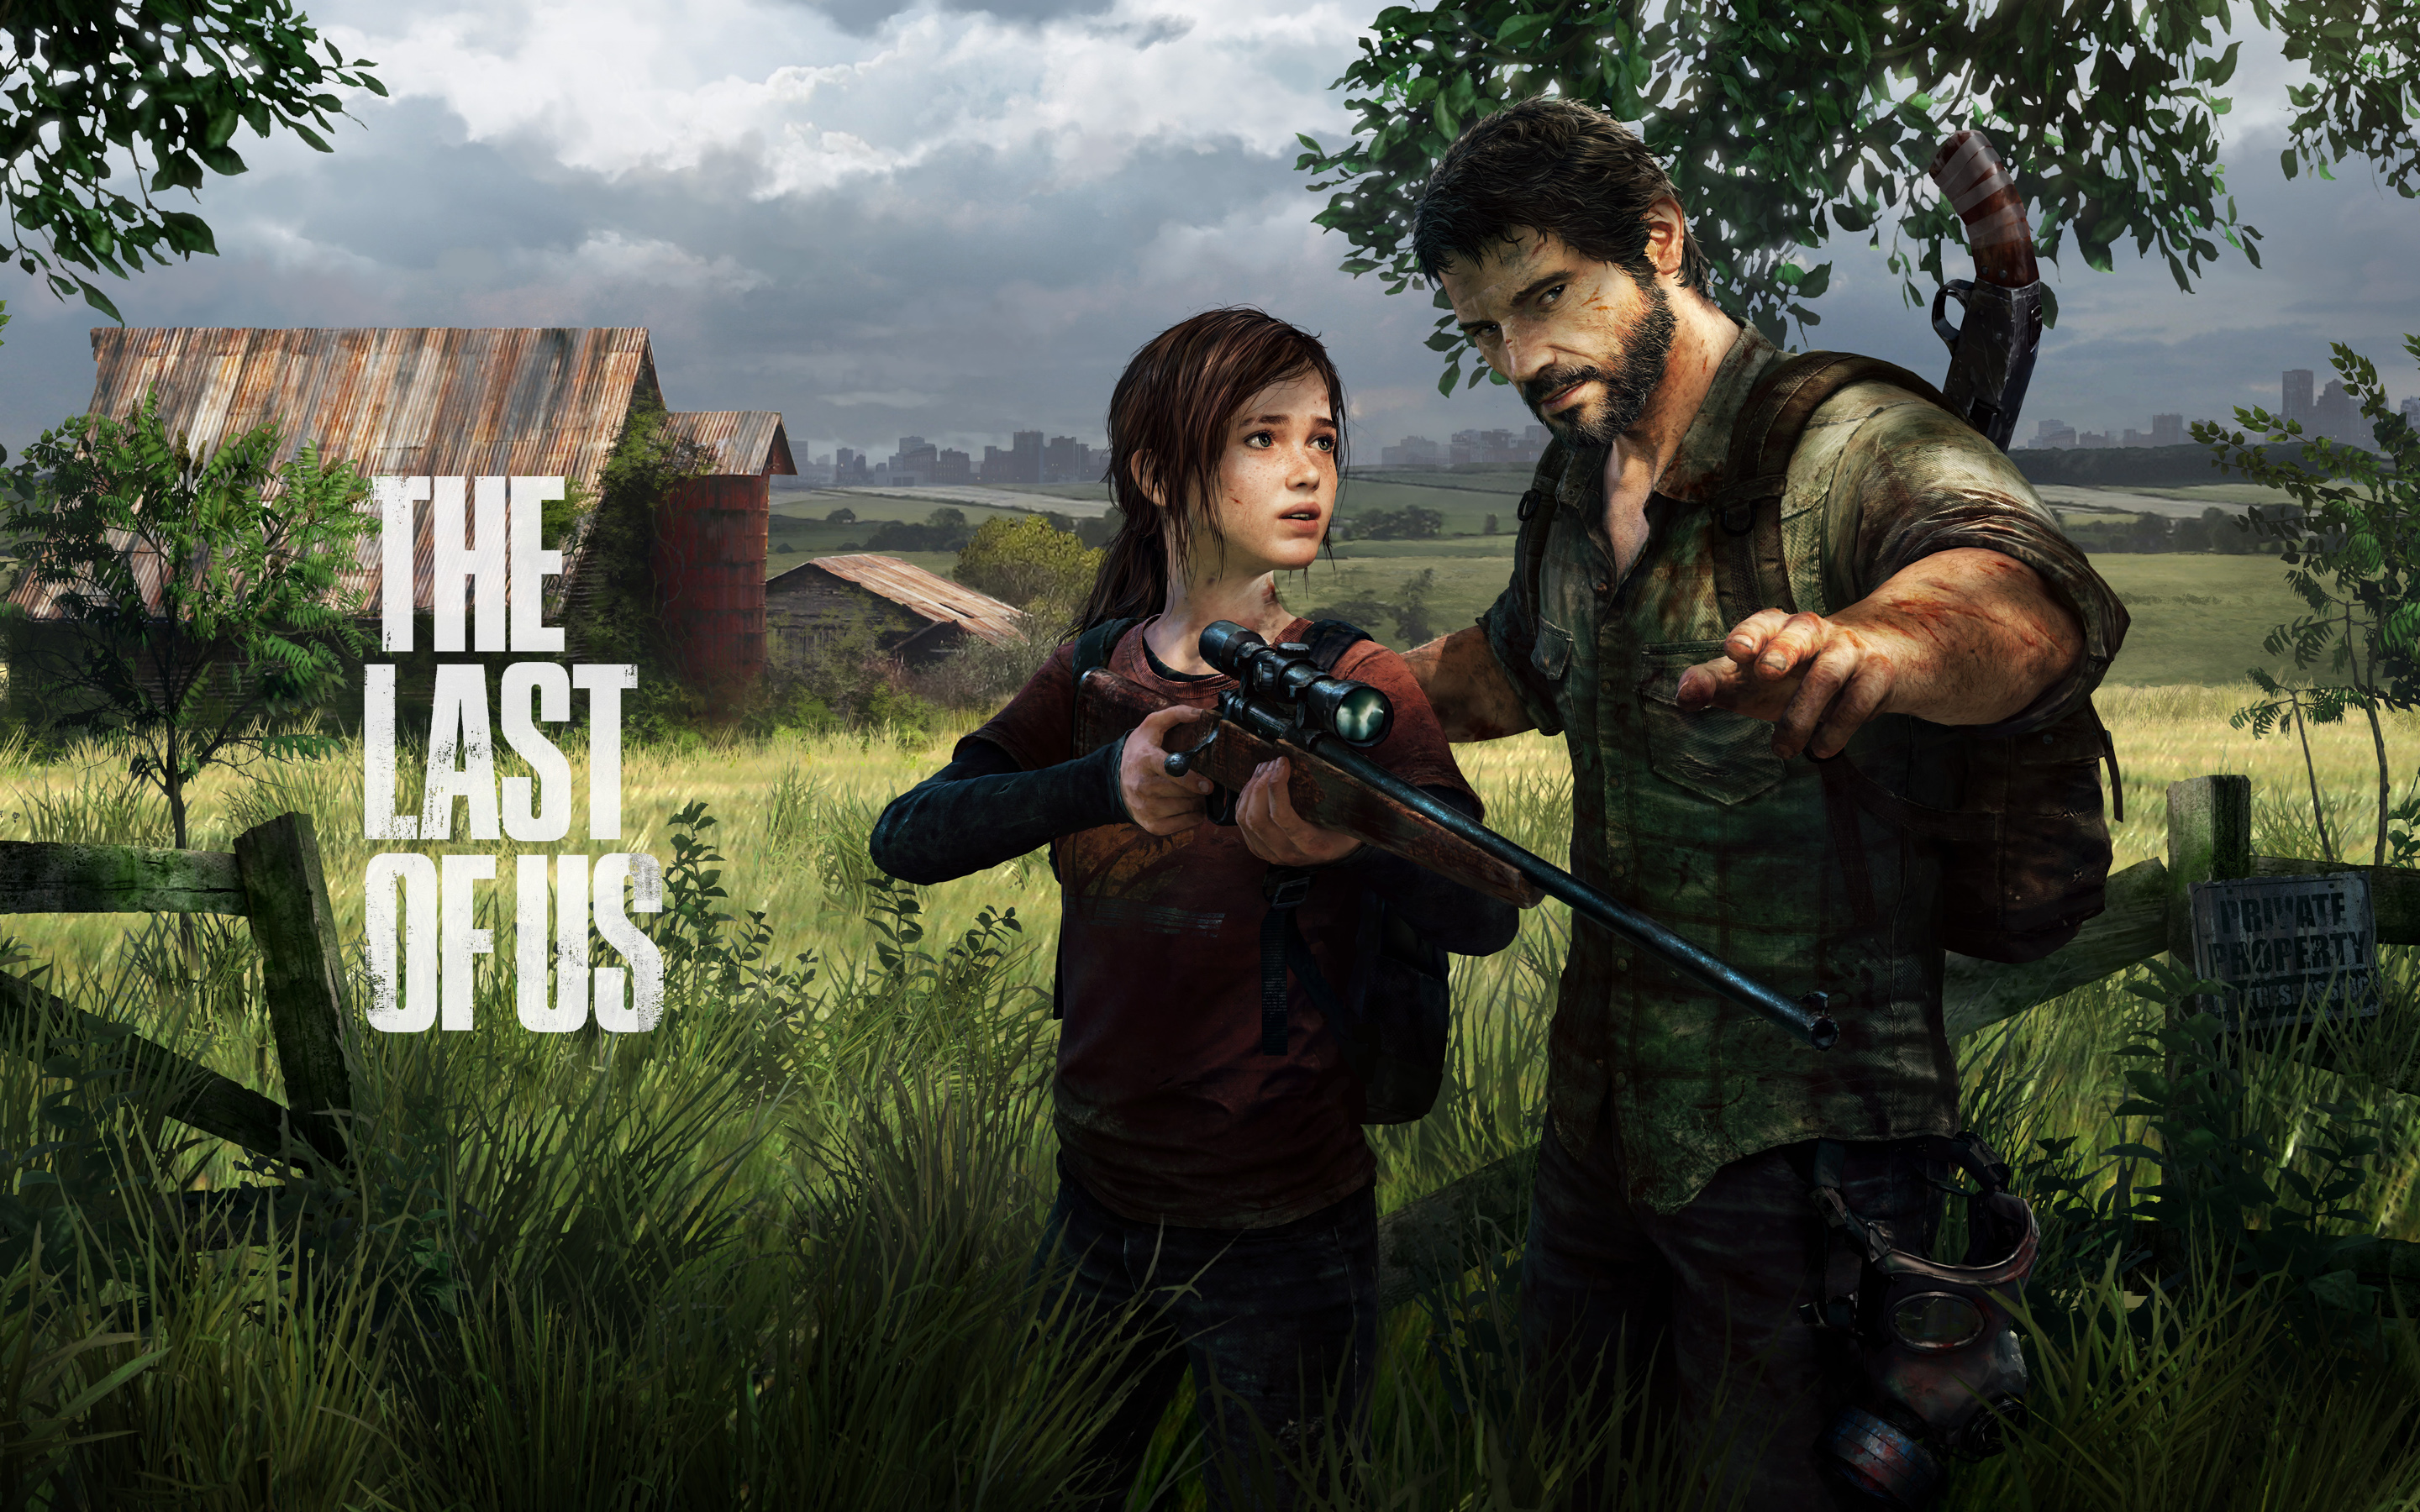 The Last of Us pips Grand Theft Auto V to most nominations in Bafta awards - News - Gadgets and Tech - The Independent